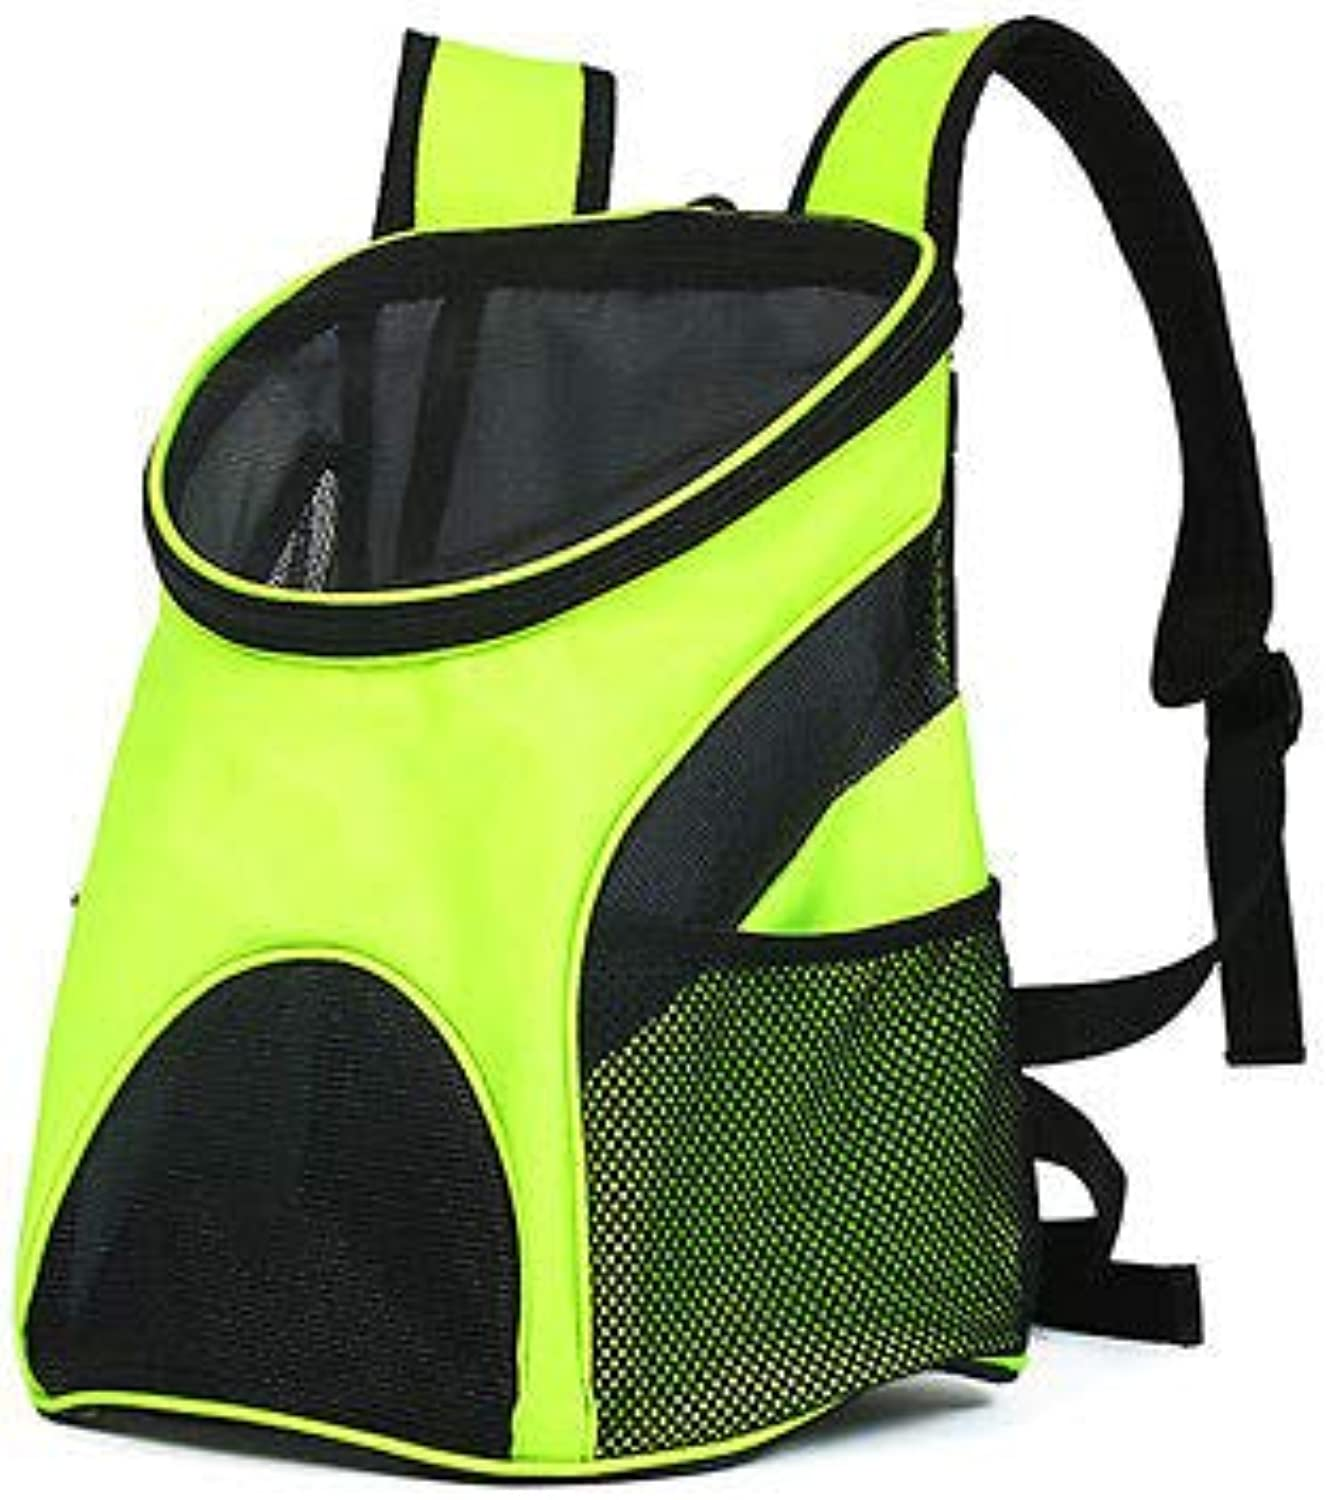 FidgetGear Outdoor Sports Breathable Mesh Backpack Pet Cat Dog Carrying Carrier Travel Tote Grass Green